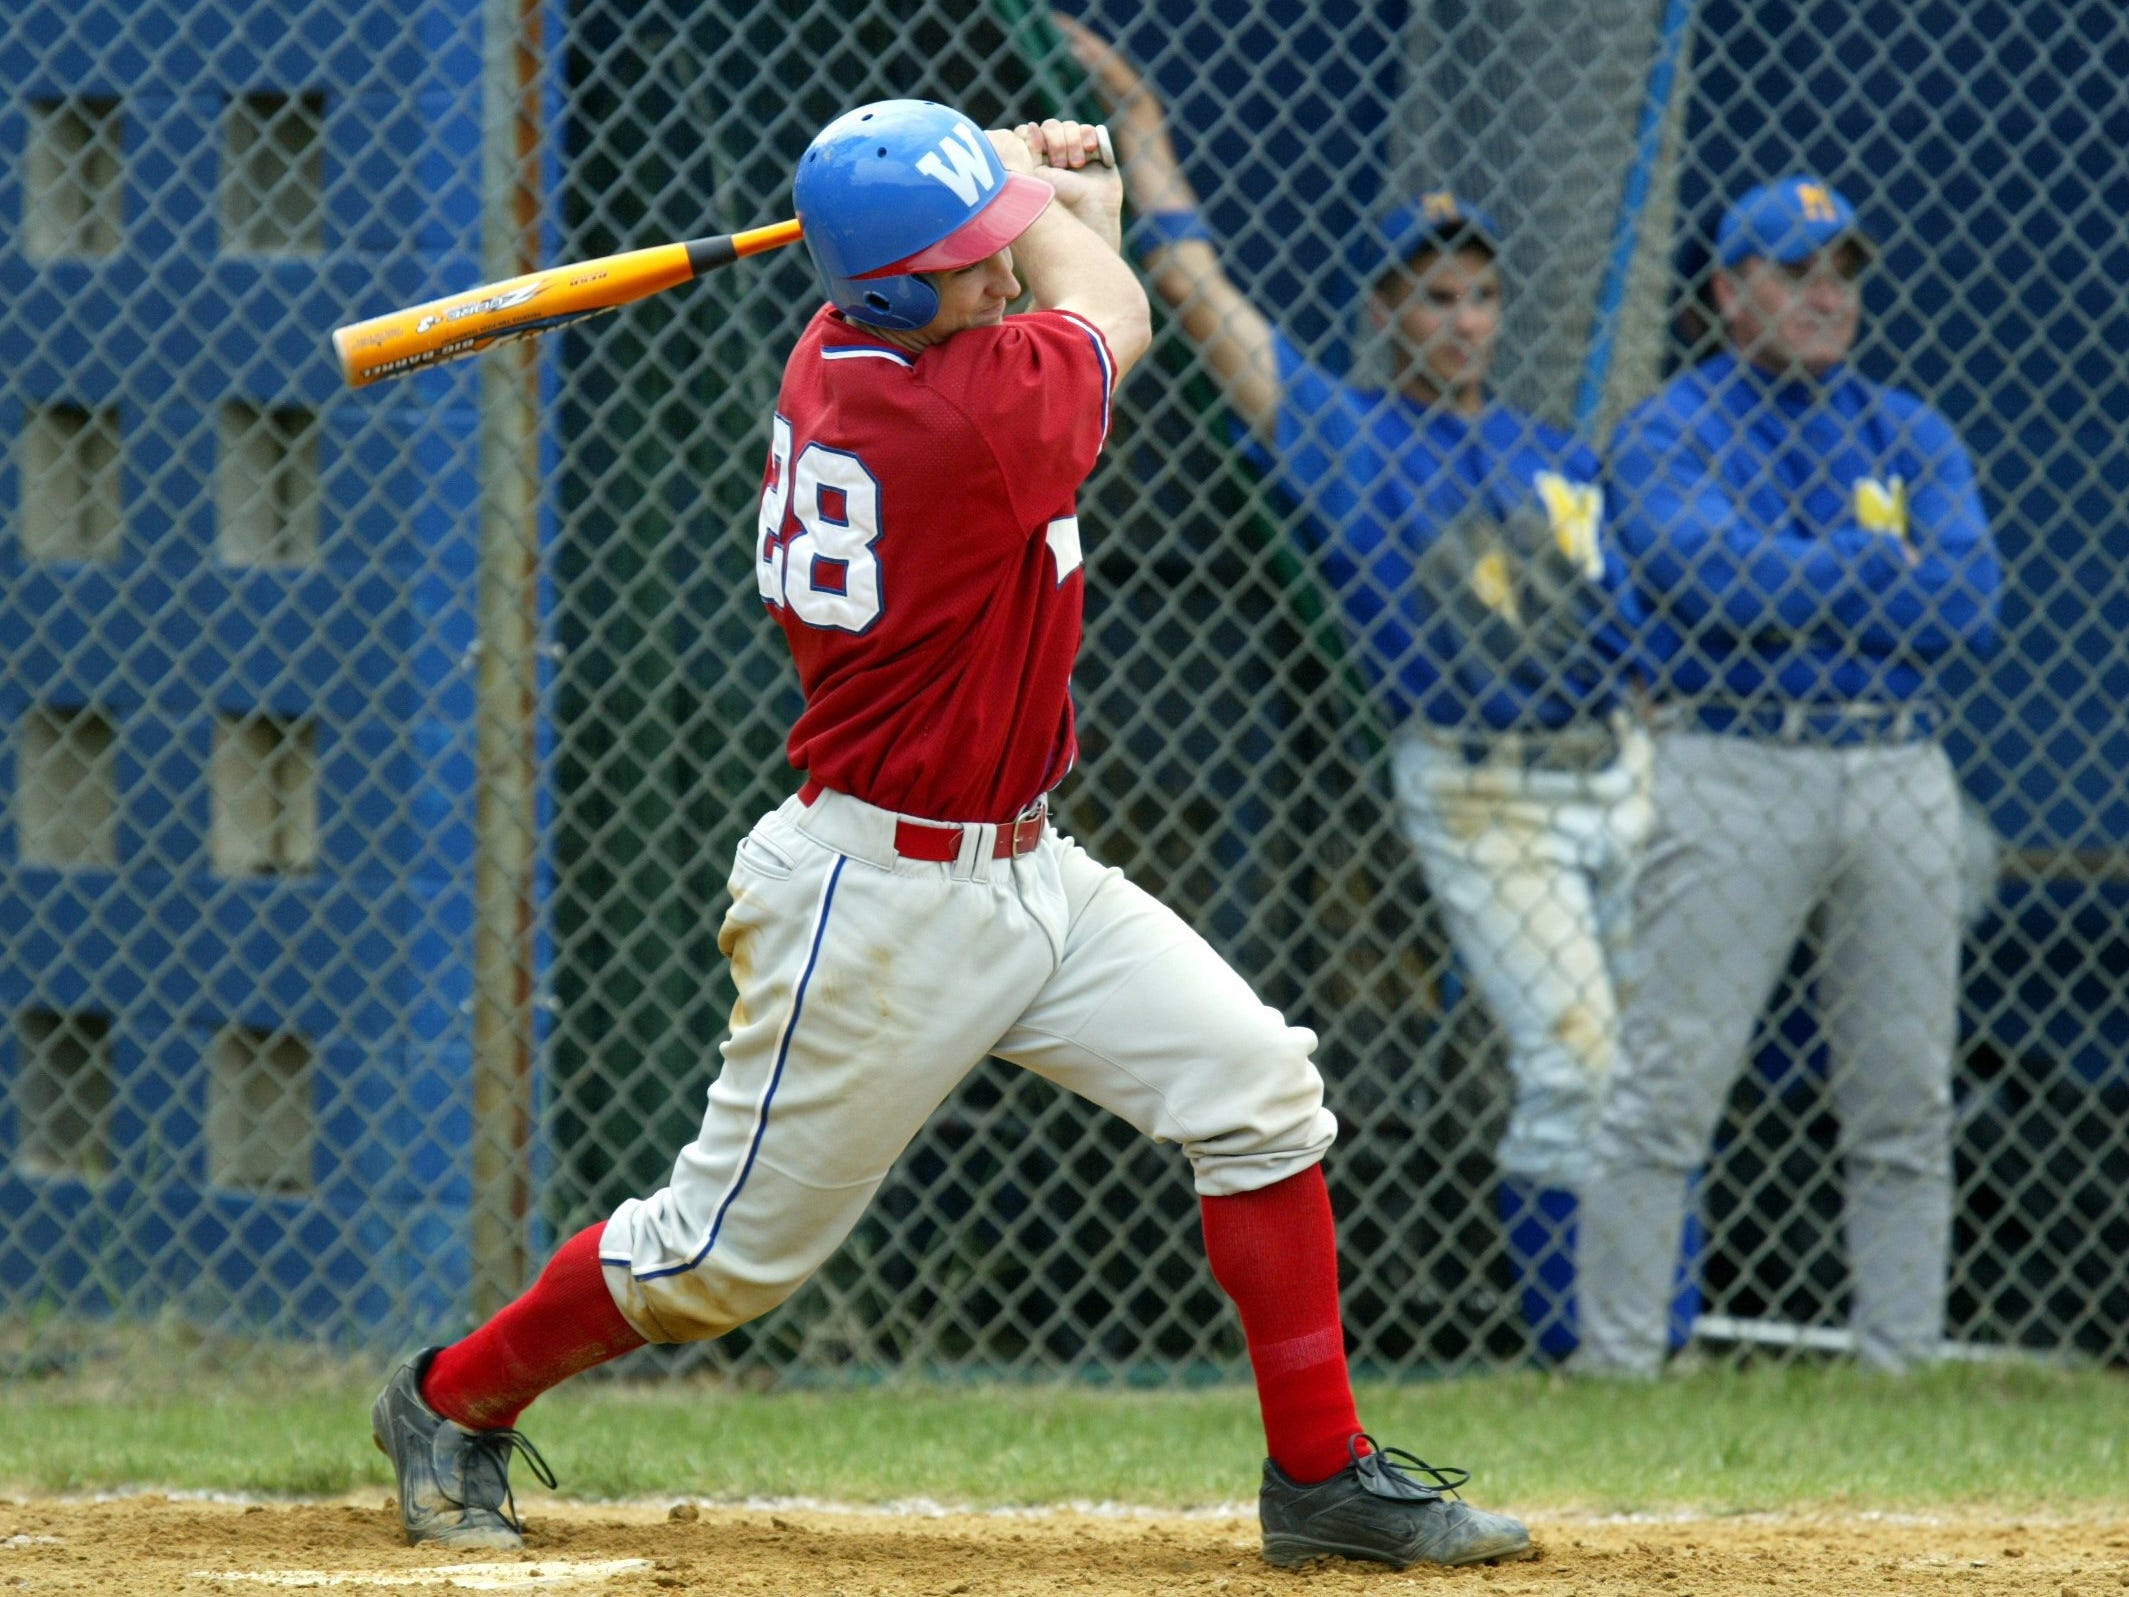 Wall's Evan Baubles rips a ball in a 2003 game. By the end of his career a year later, he was the Crimson Knights' all-time home run leader with 18. .